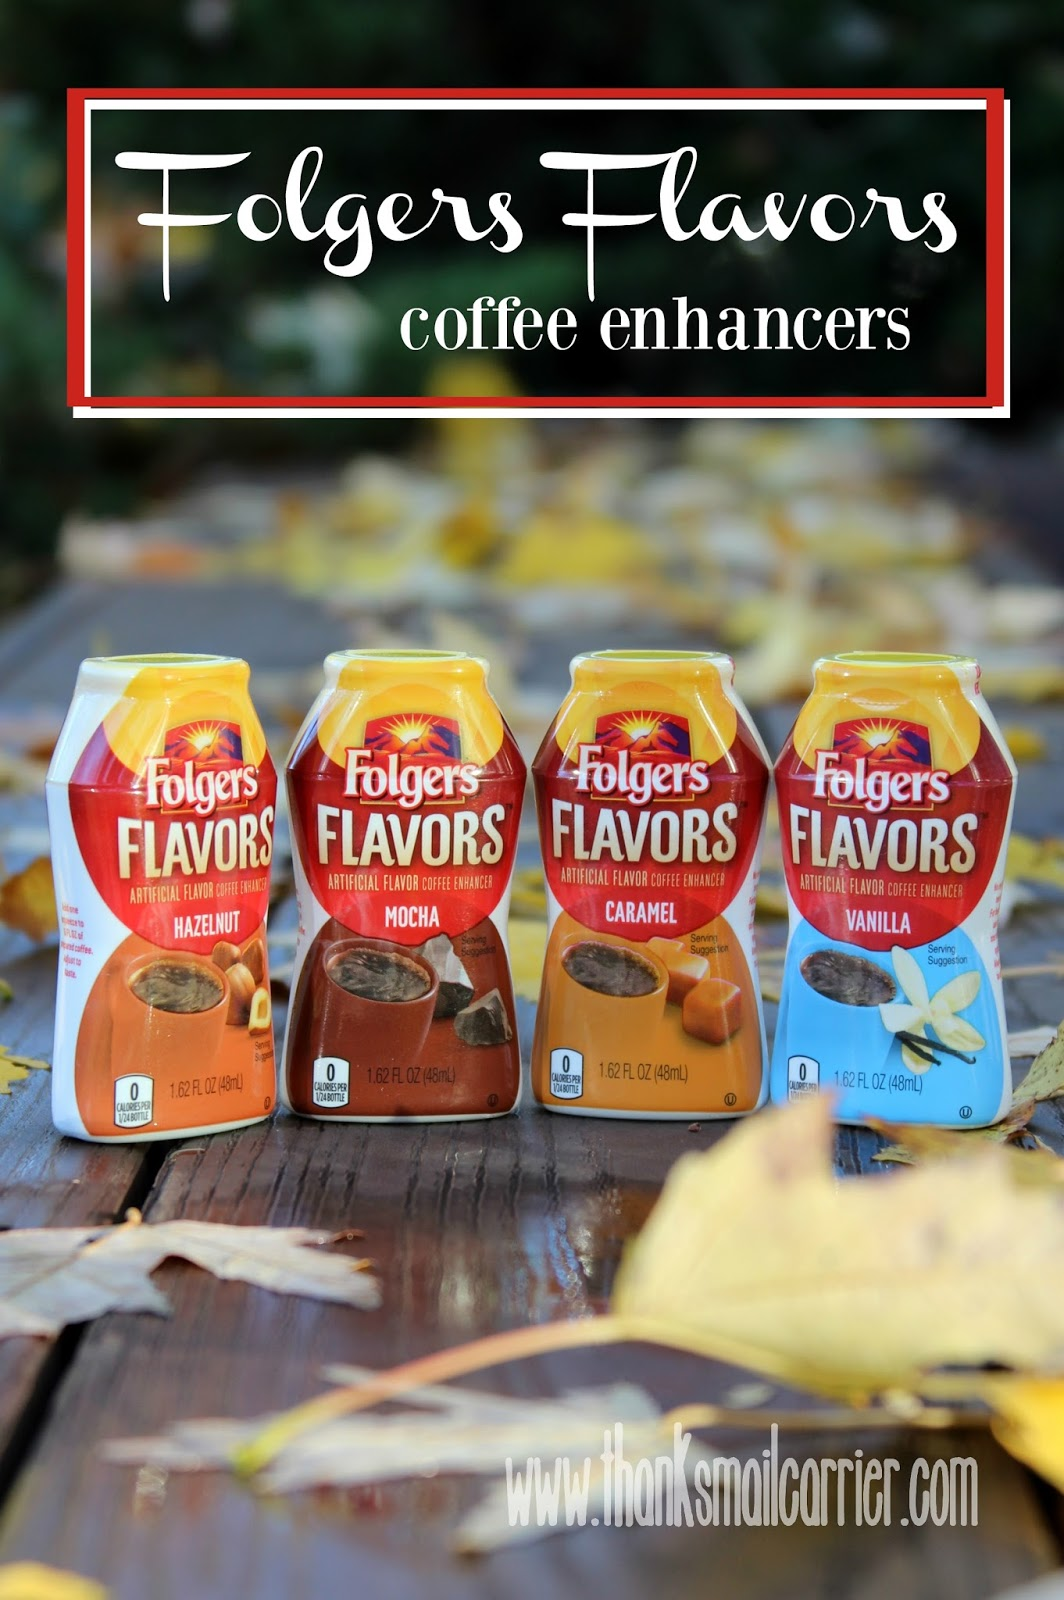 Folgers Flavors review